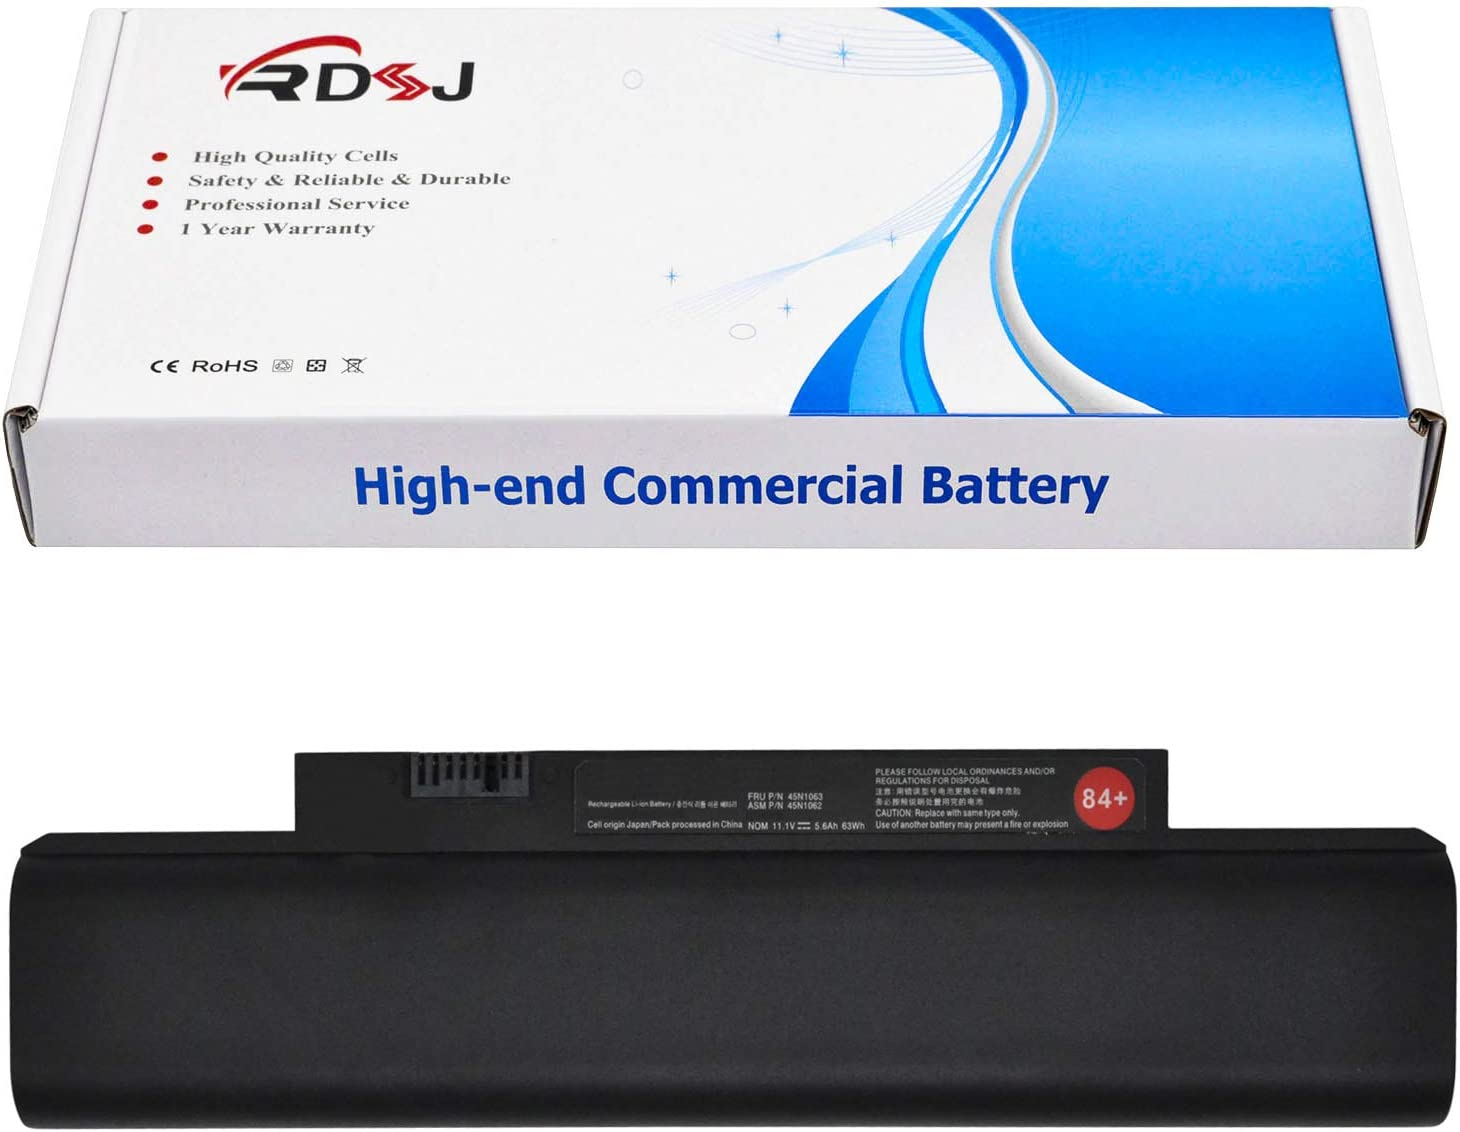 42T4947 42T4948 84+ 63Wh Battery Replacement for Lenovo ThinkPad Edge E120 E125 E130 E135 E145 E320 E325 E330 E335 L330 X121e X130e X131e X140e 42T4951 45N1174 42T4958 42T4957 0A36290